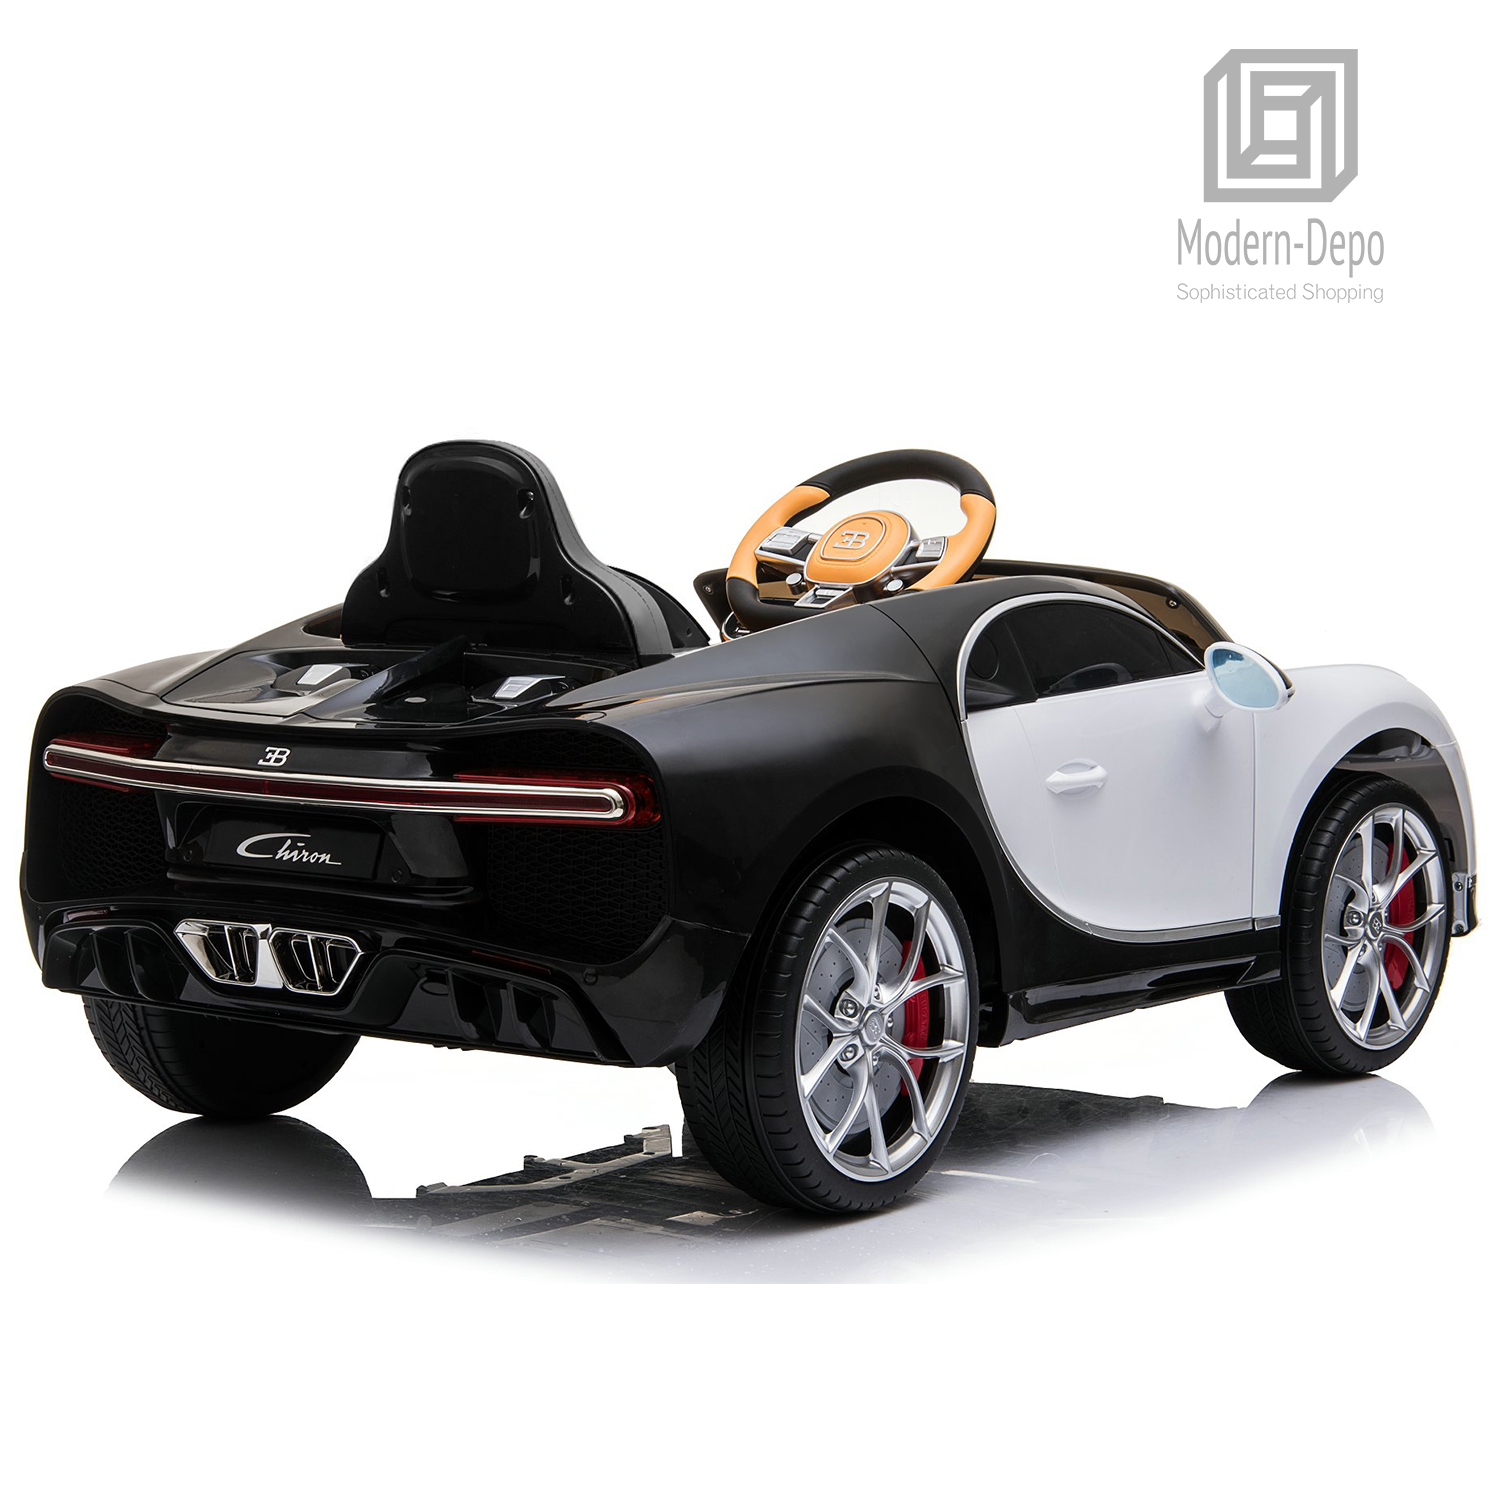 Bugatti-Chiron-12V-Kids-Ride-On-Car-with-Remote-Control-High-Speed-Motor miniature 41